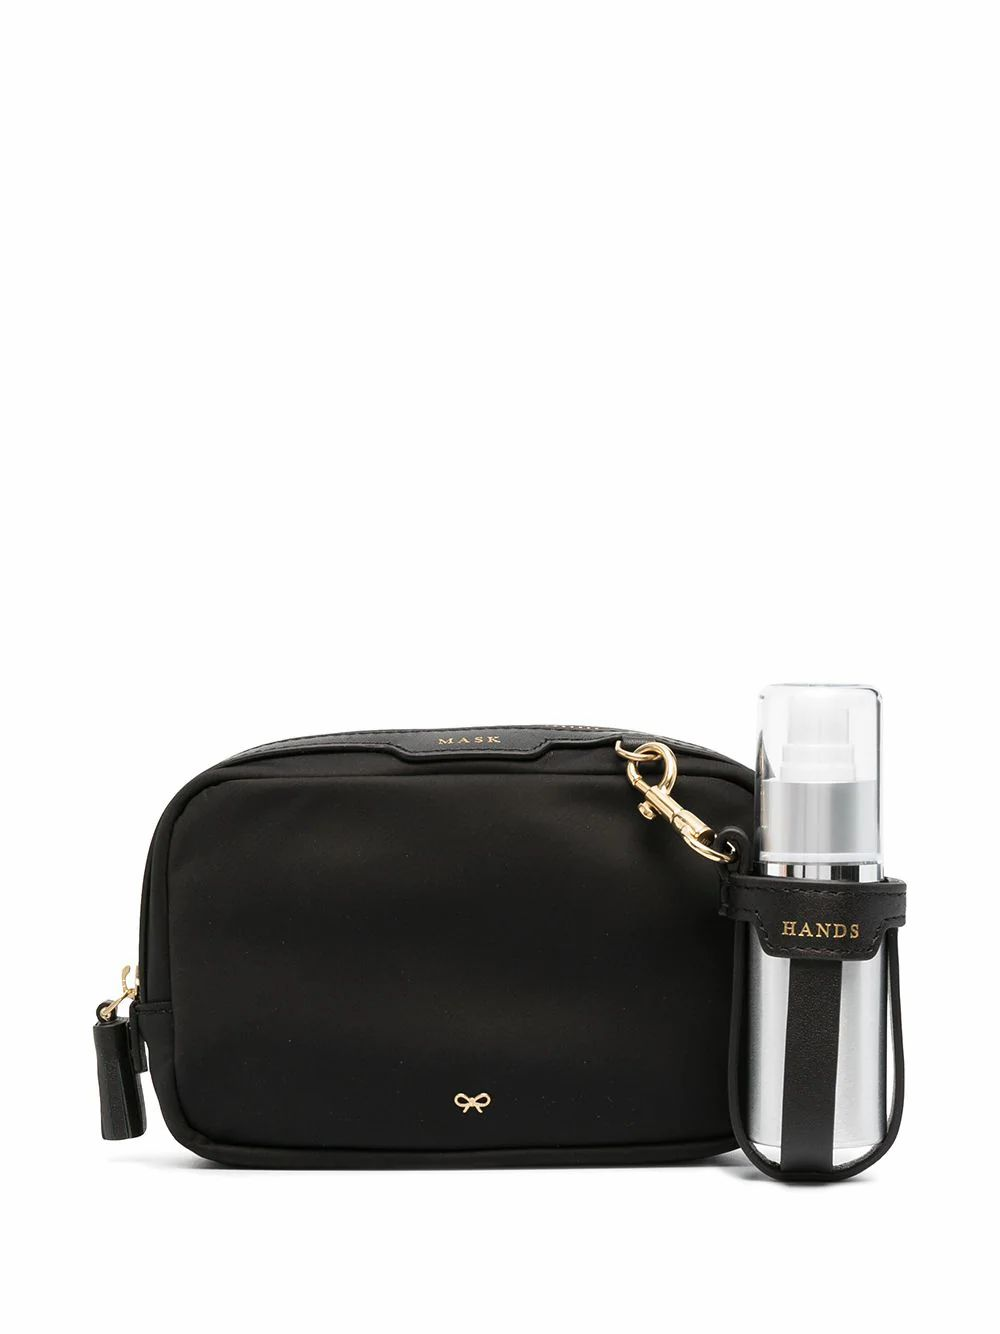 Anya Hindmarch ANYA HINDMARCH WOMEN'S 156240BLACK BLACK POLYAMIDE BEAUTY CASE